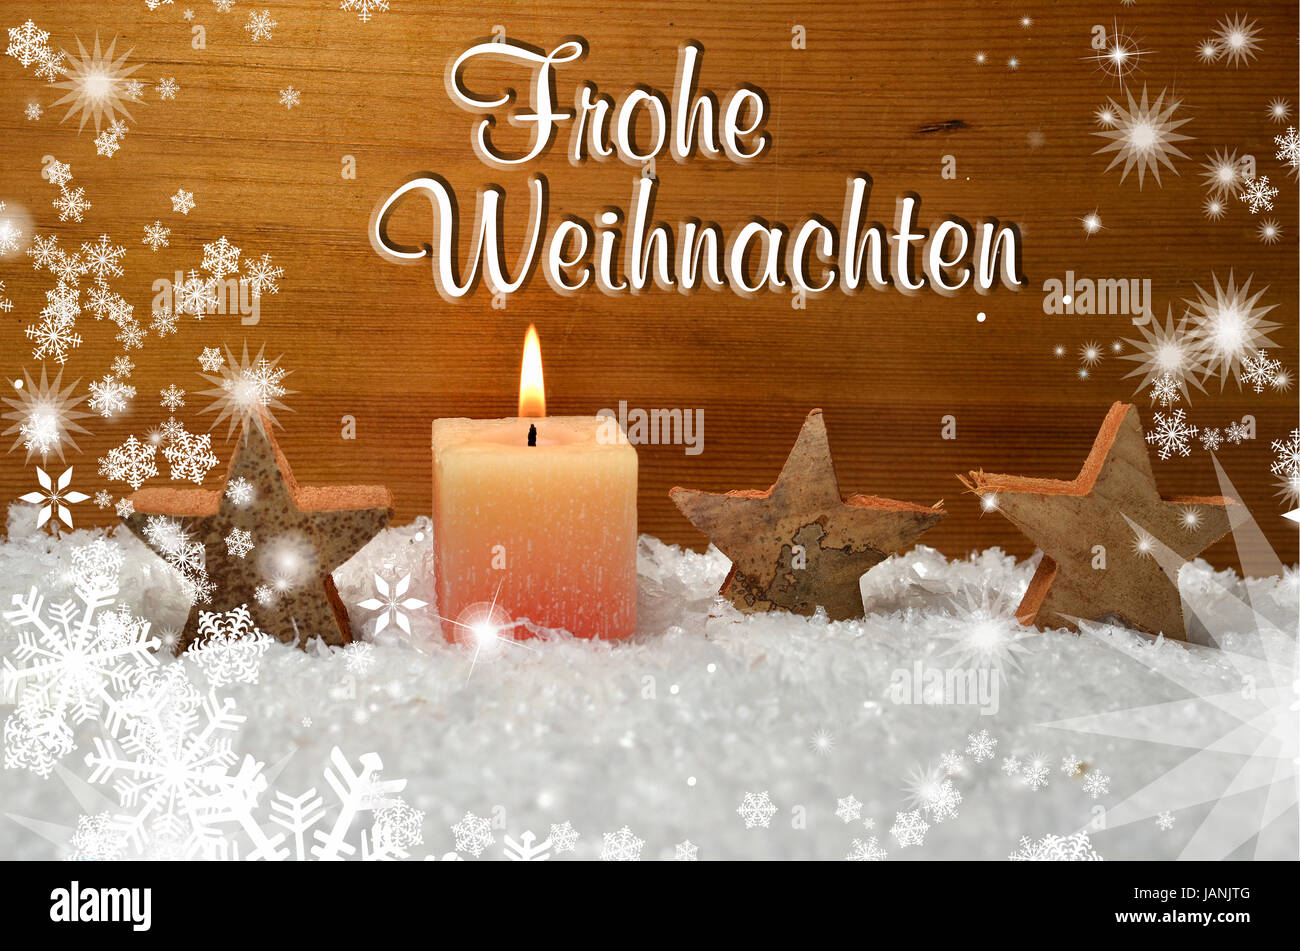 Frohe Weihnachten Frohe Weihnachten Dekoration Advent Stock Photo 144305296 Alamy